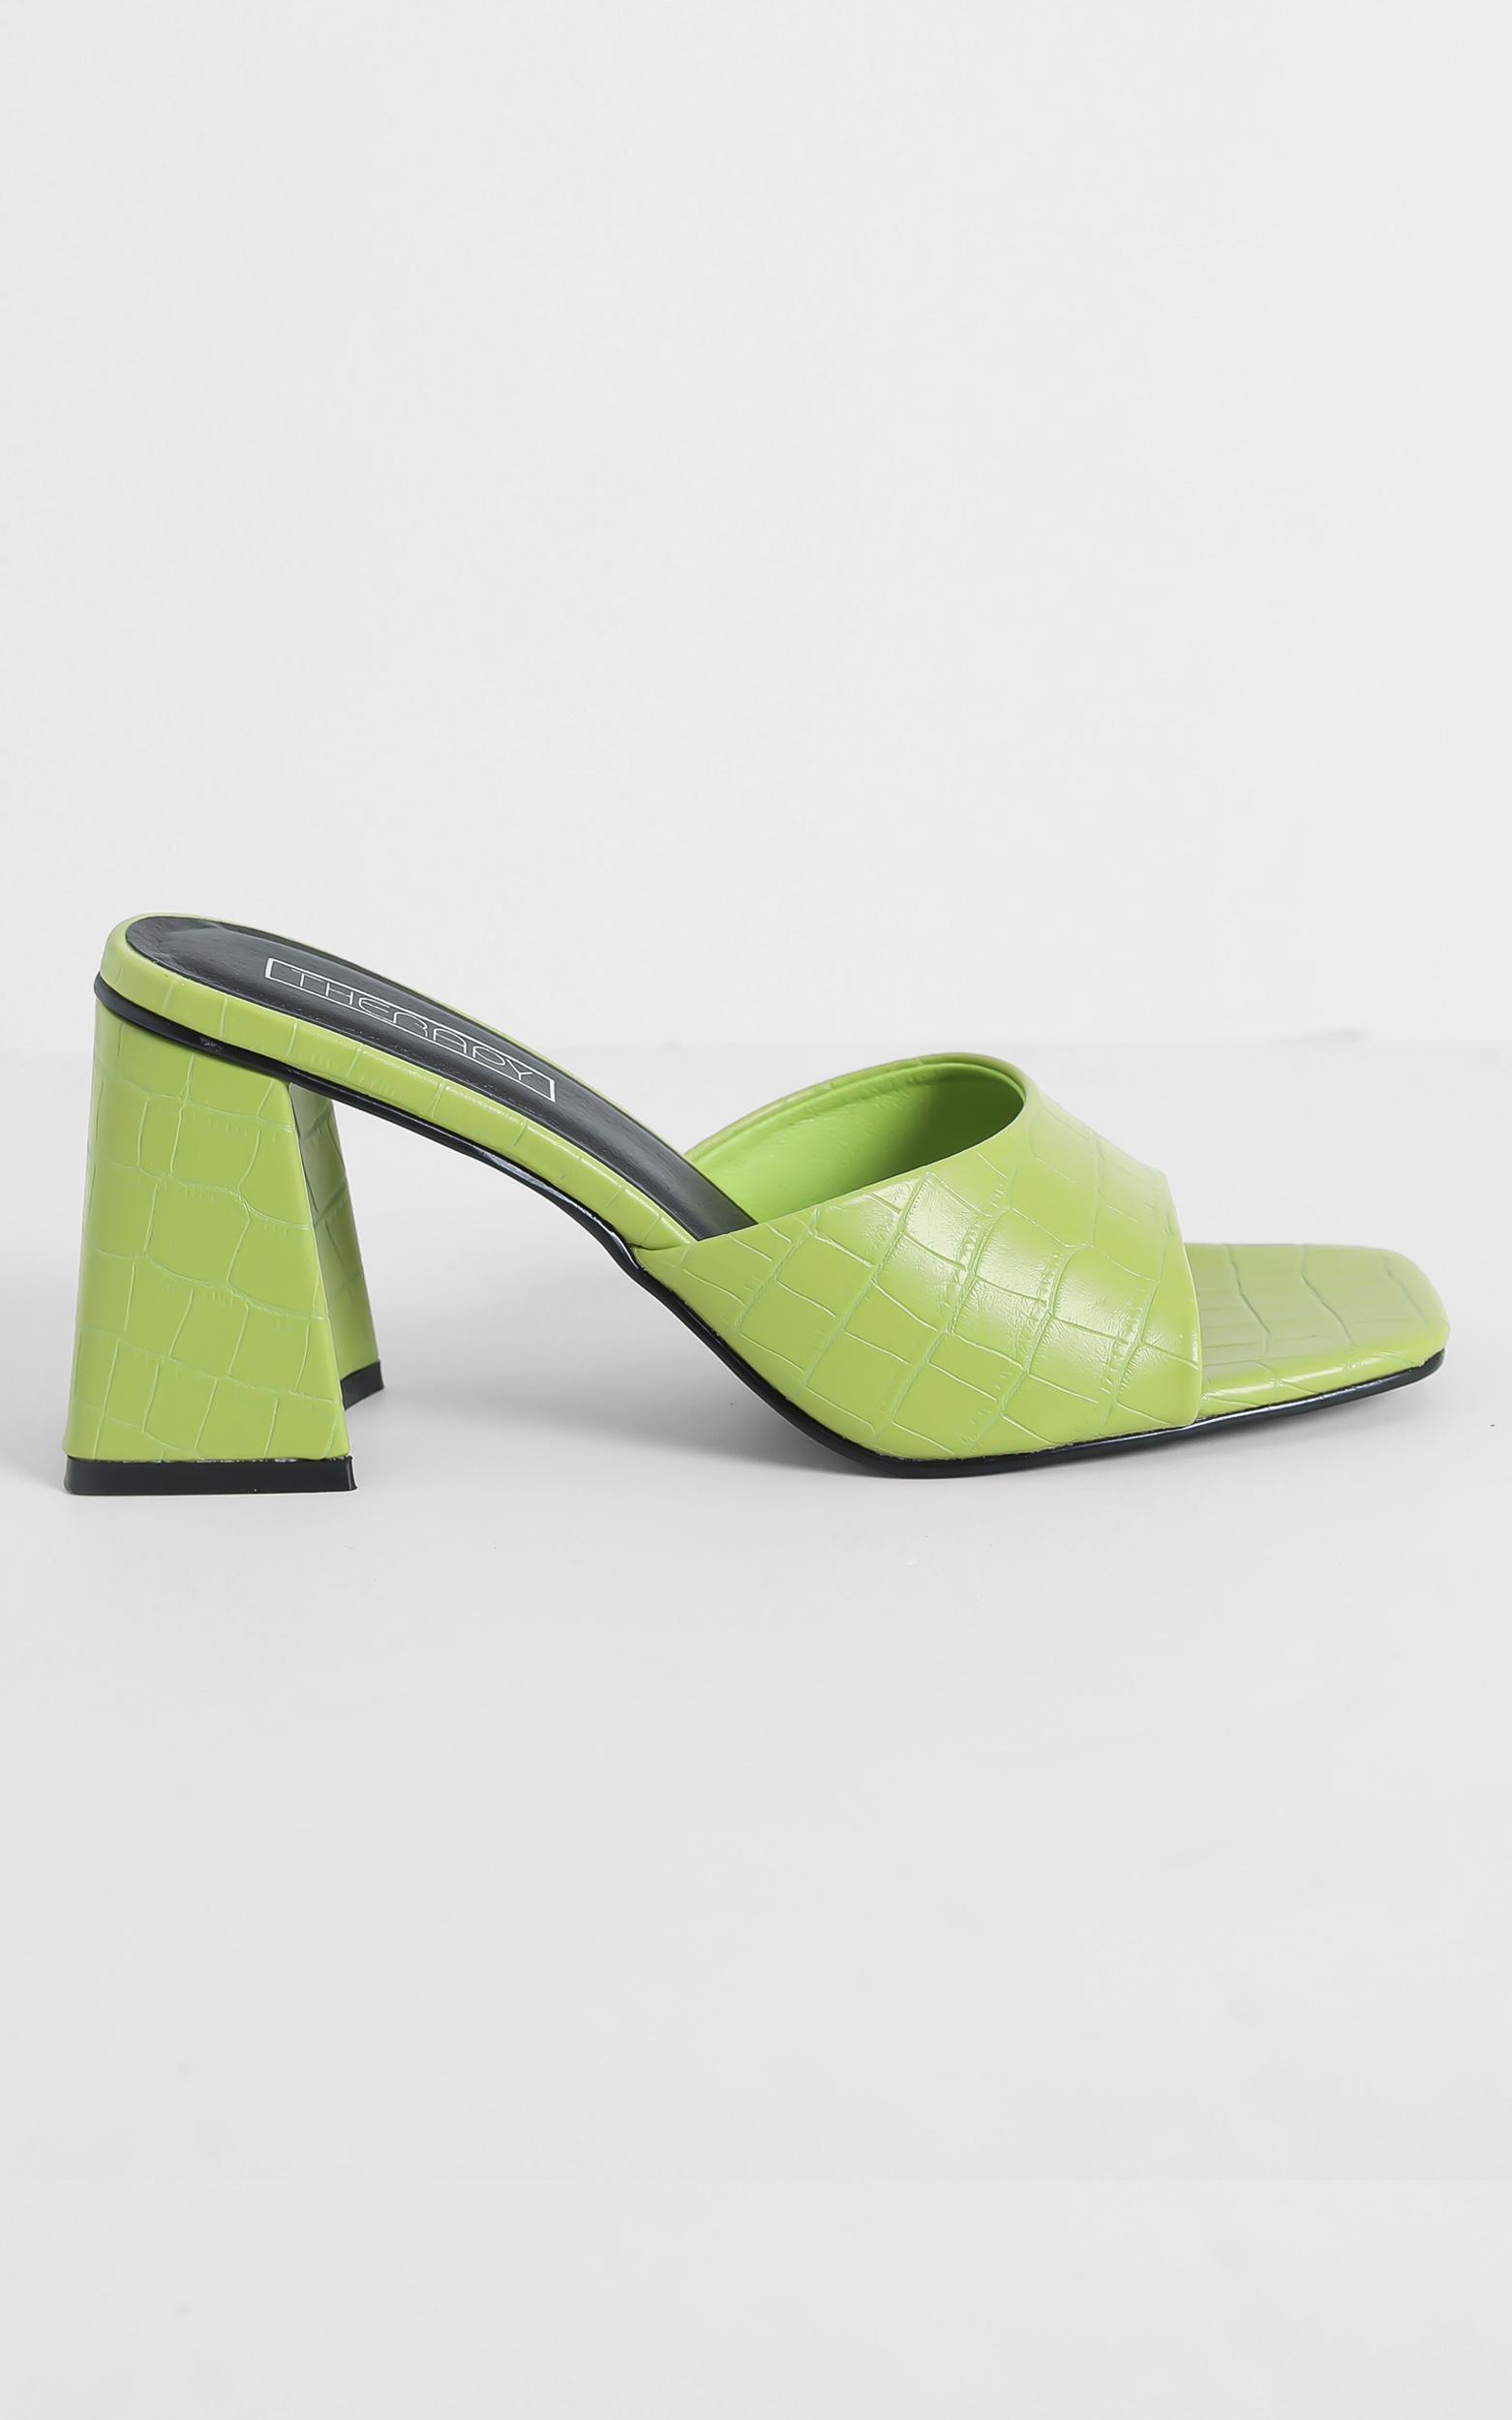 Therapy - Colina Heels in Lime Green - 05, GRN3, hi-res image number null